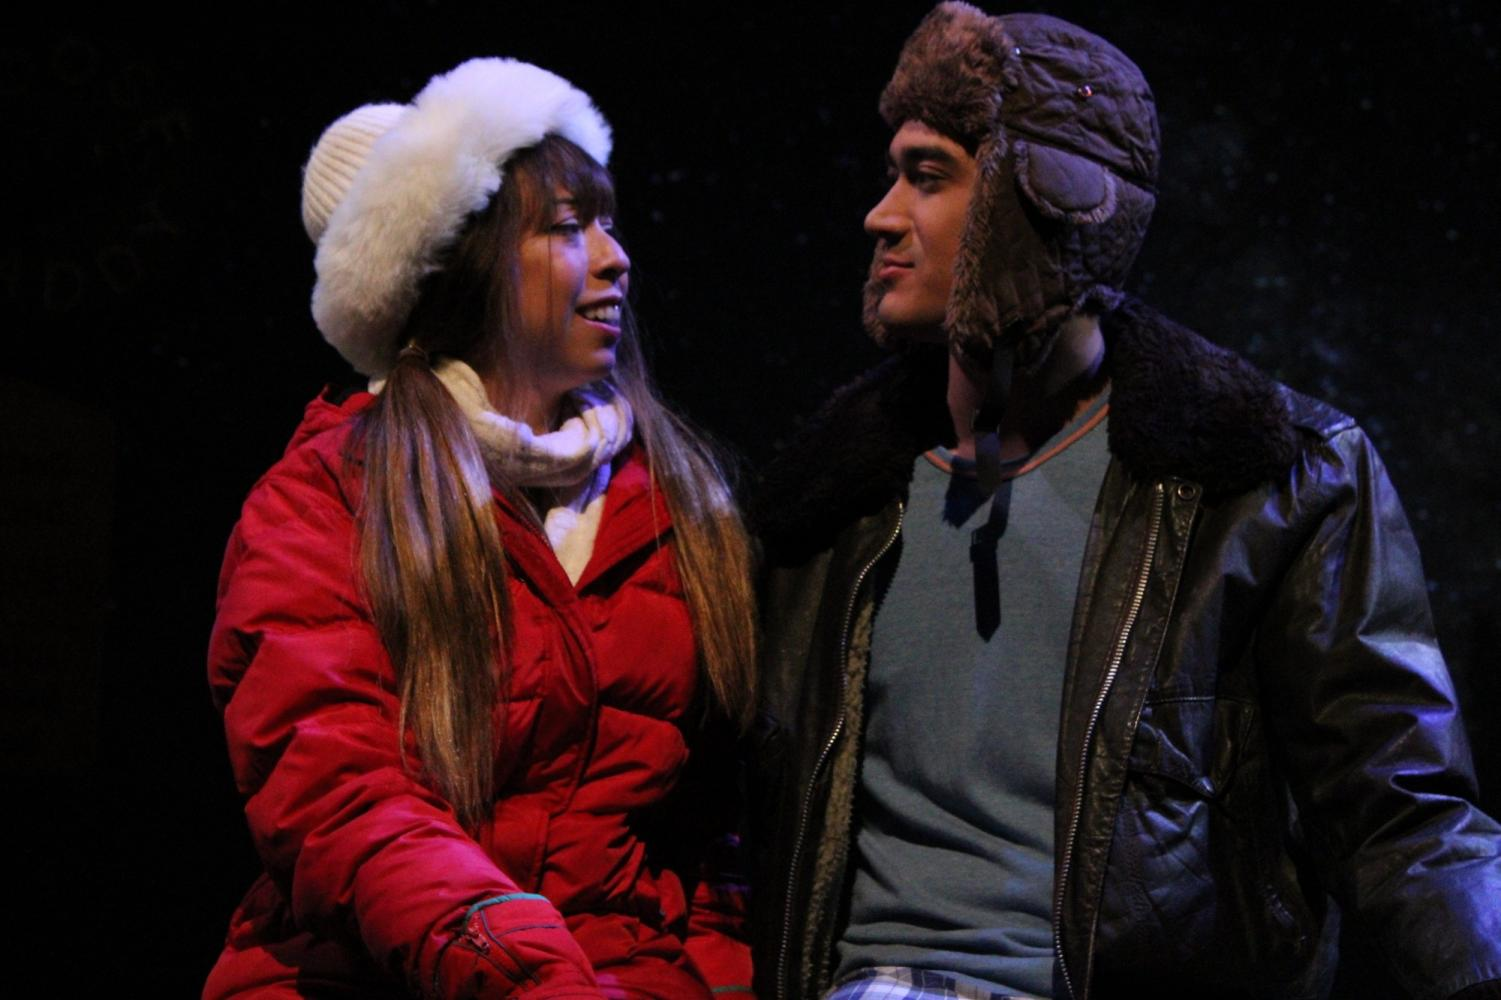 Therese Rico, (left) who plays a woman named Glory locks eyes with Daichi Marian during a  rehearsal of Almost, Maine on Monday, Oct. 7.  The romantic comedy is divided into nine short but connected plays. Jaime Solis/The Union